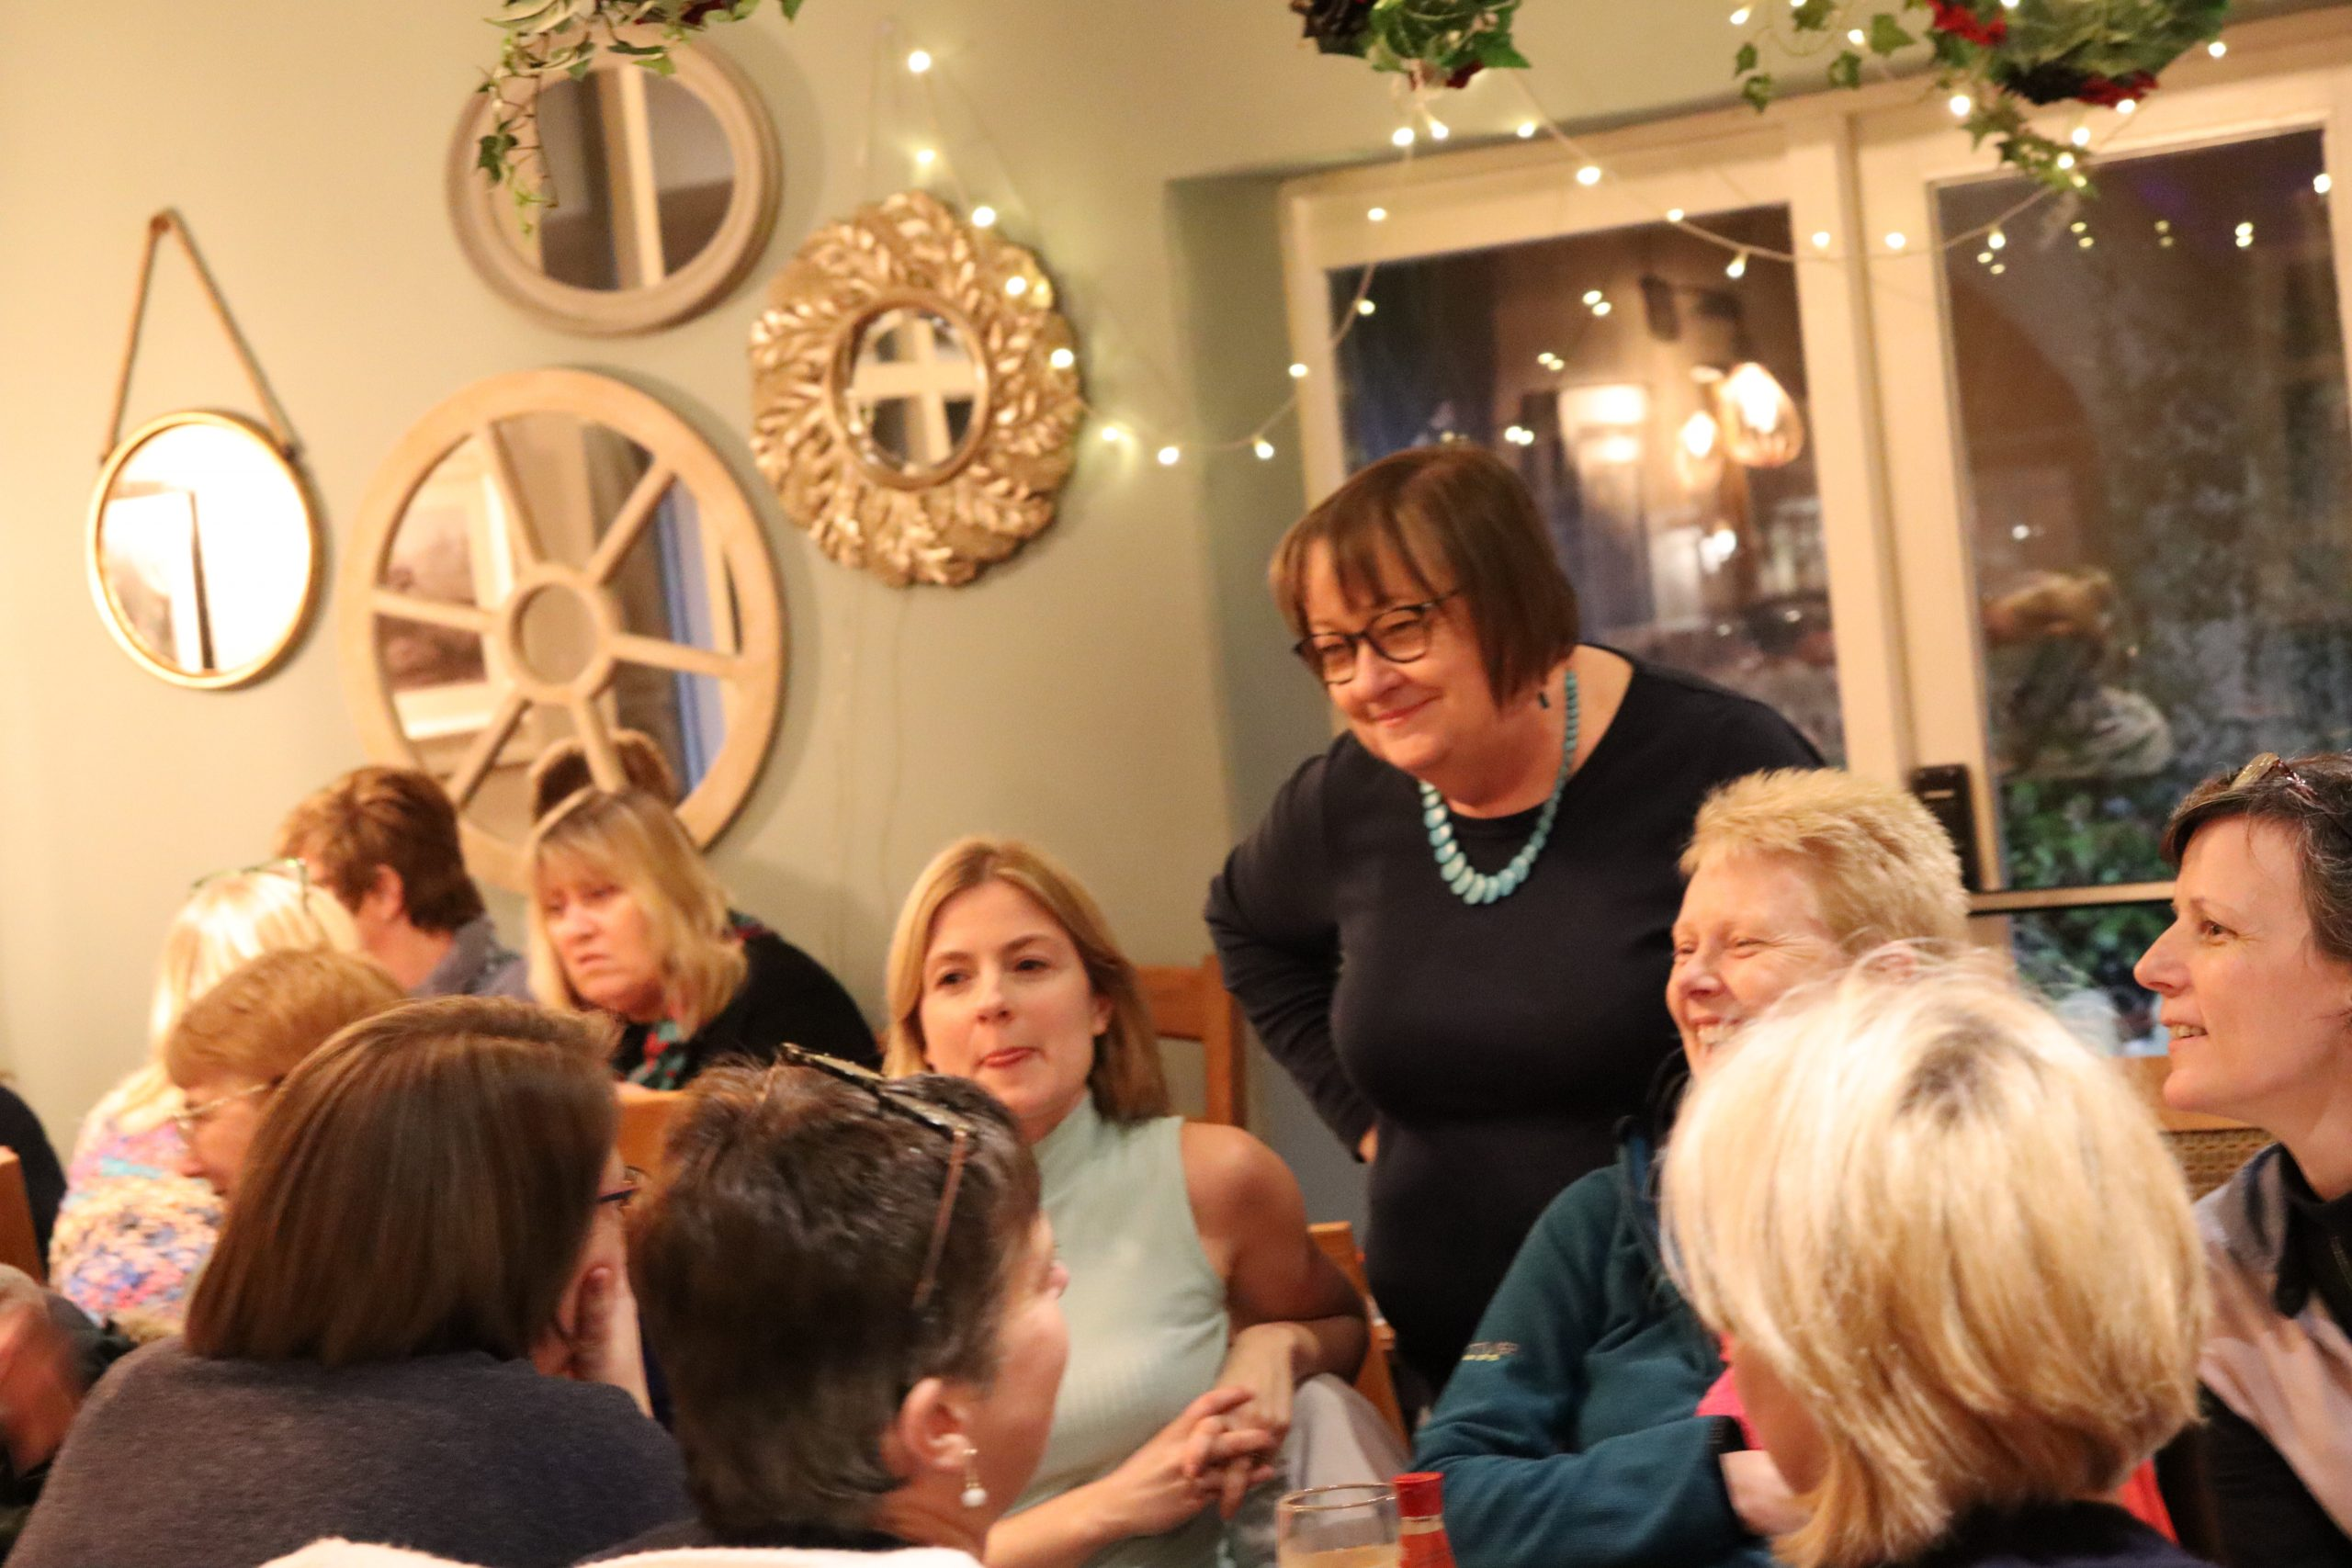 The Sparkling Business Club at Warton Arms